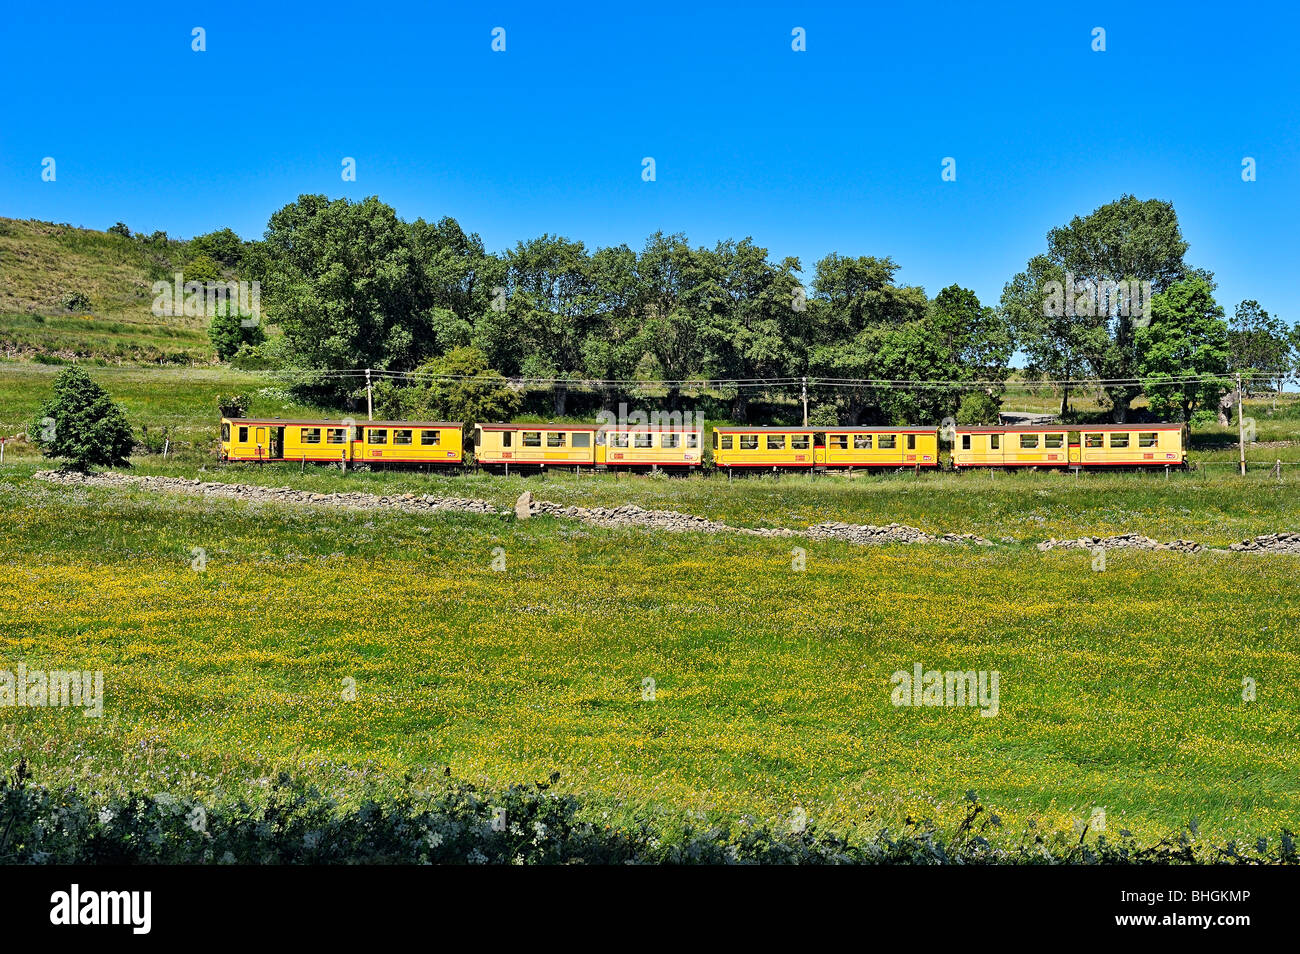 Train jaune in Pyreneans mountains, Languedoc Roussillon, France. - Stock Image